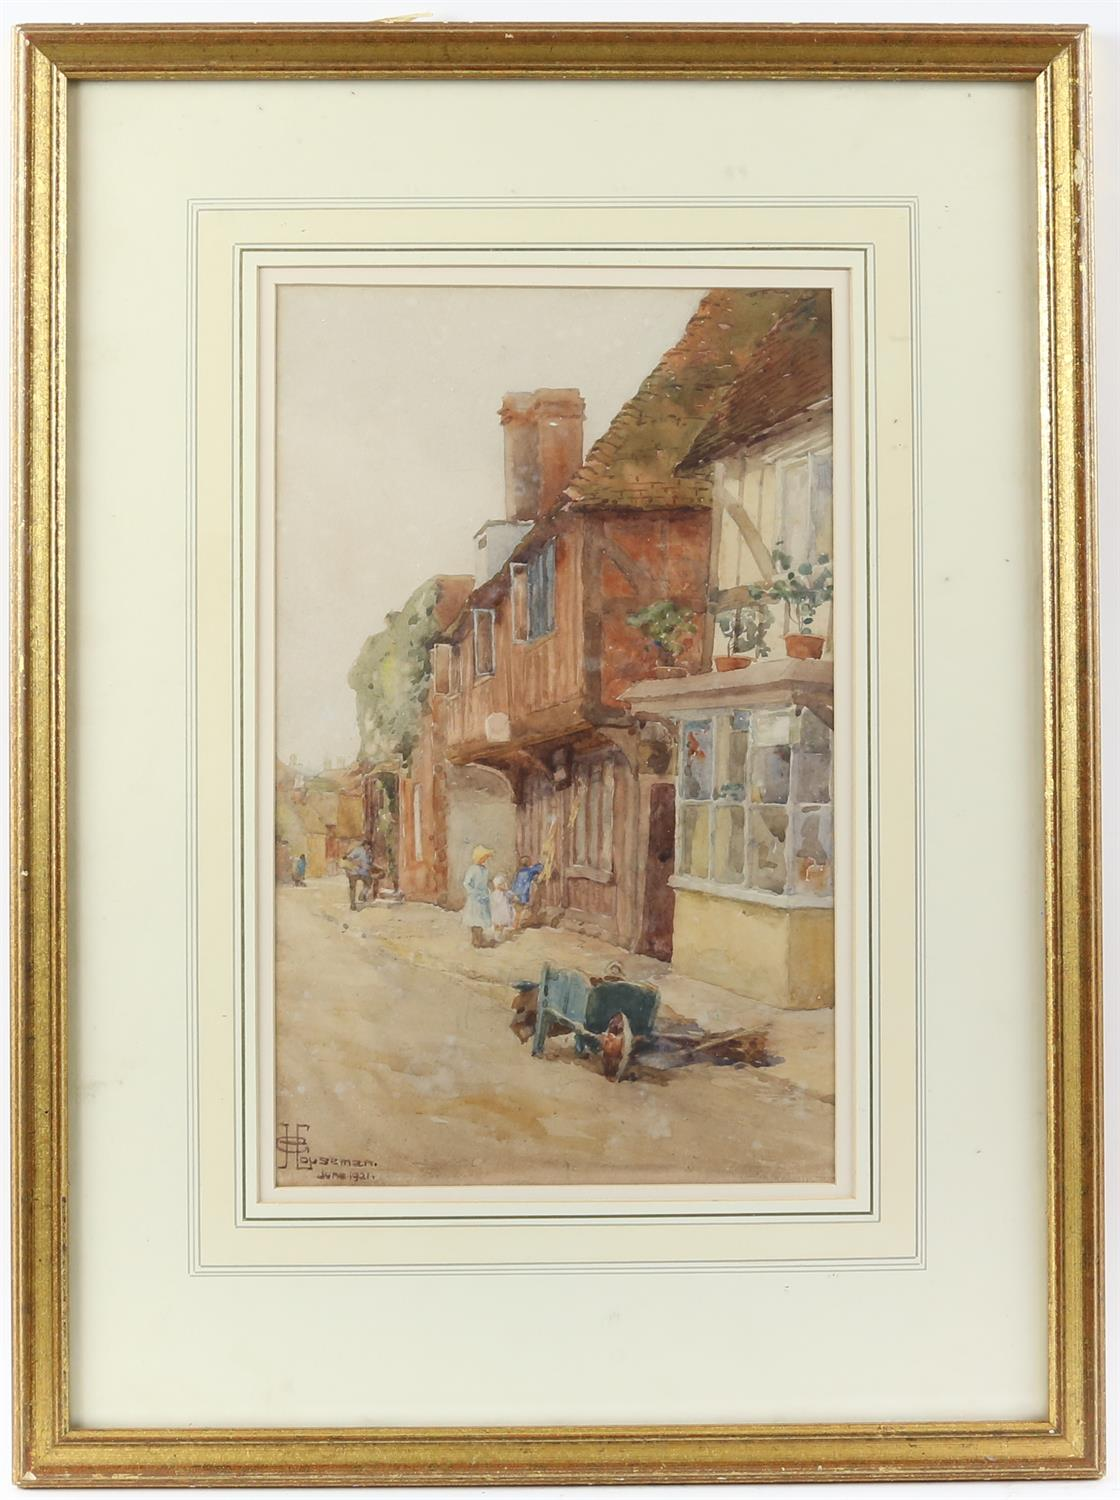 G. Houseman, 20th century, street scene with figures and barrow, signed and dated June 1921, - Image 2 of 4